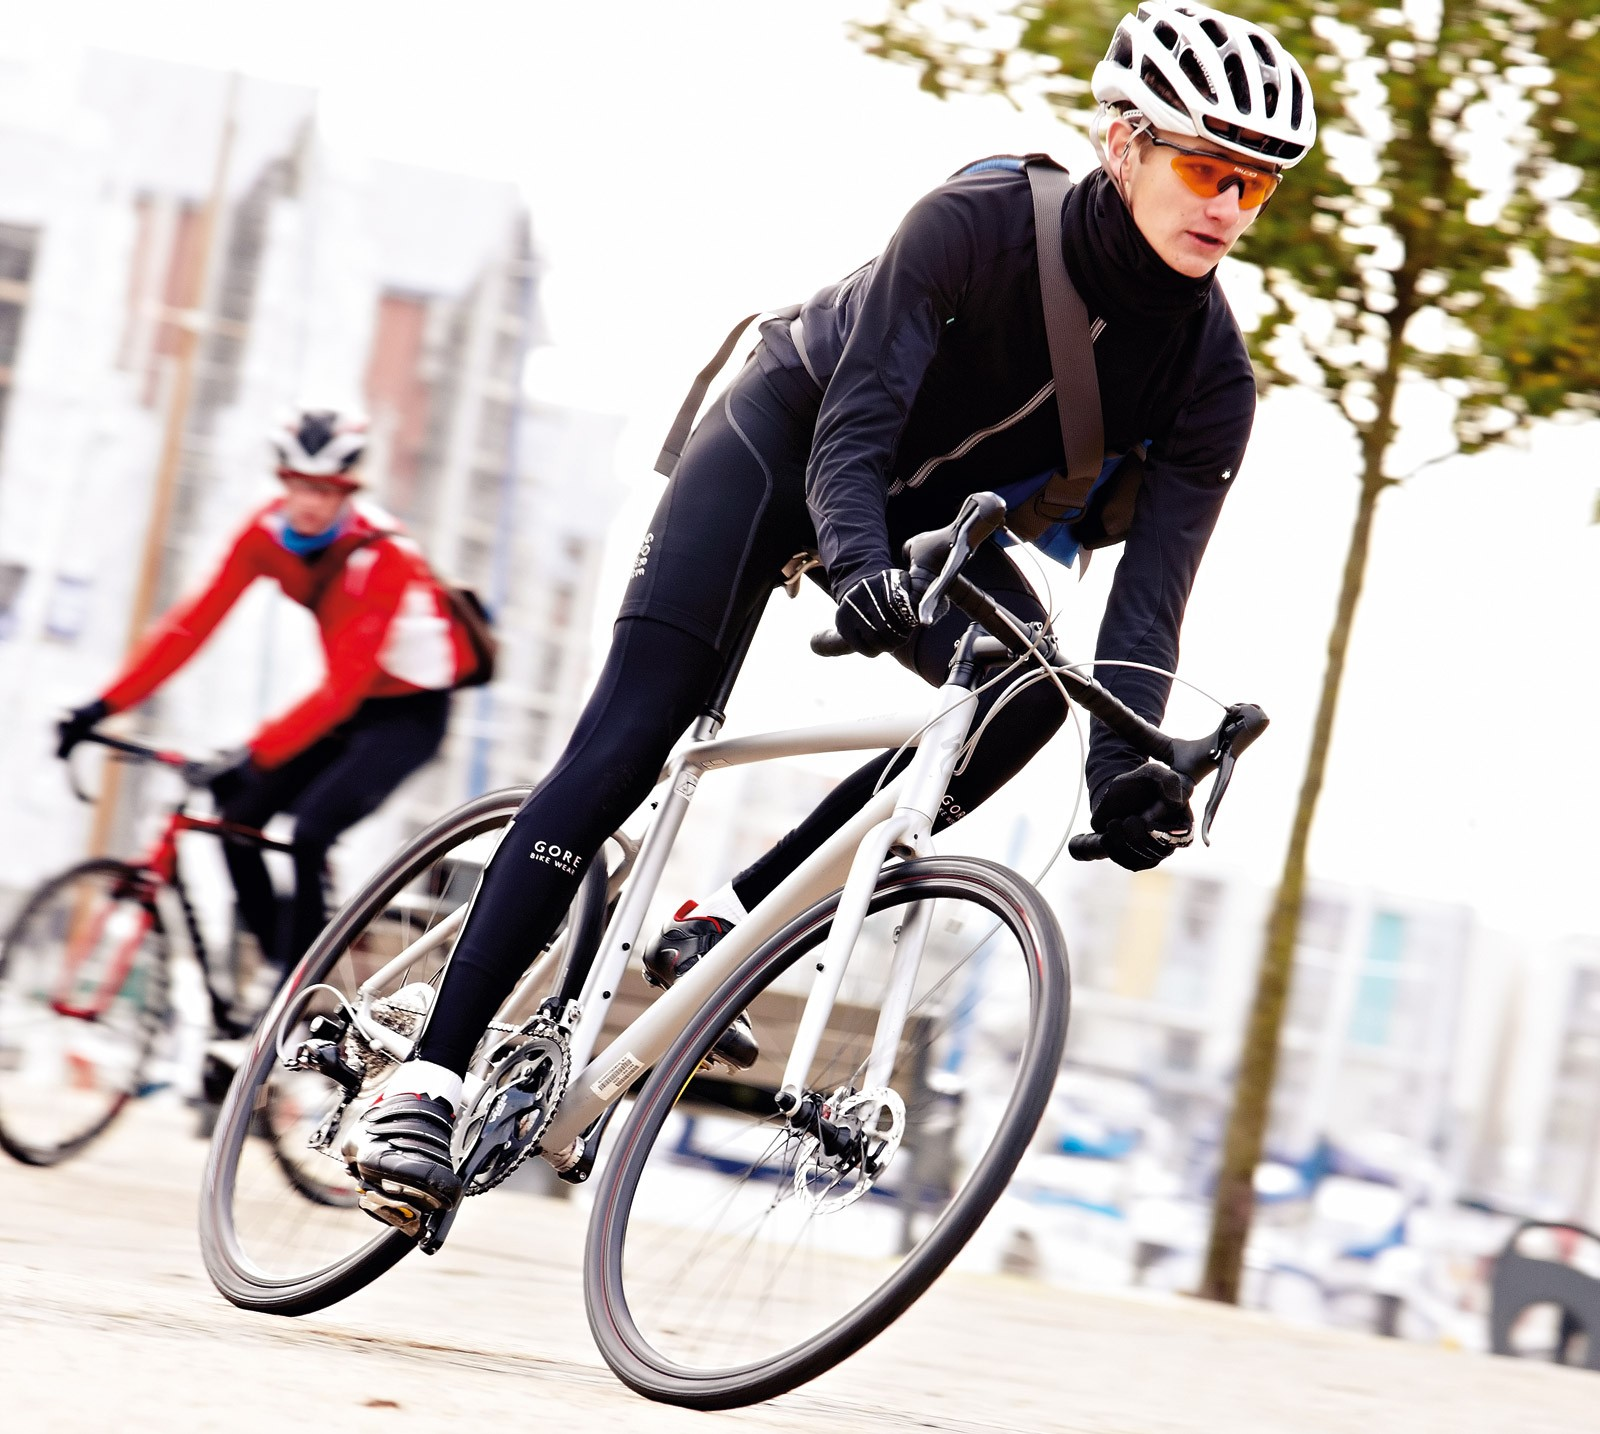 More cycling would have a knock-on effect of saving lives in London says the WHO